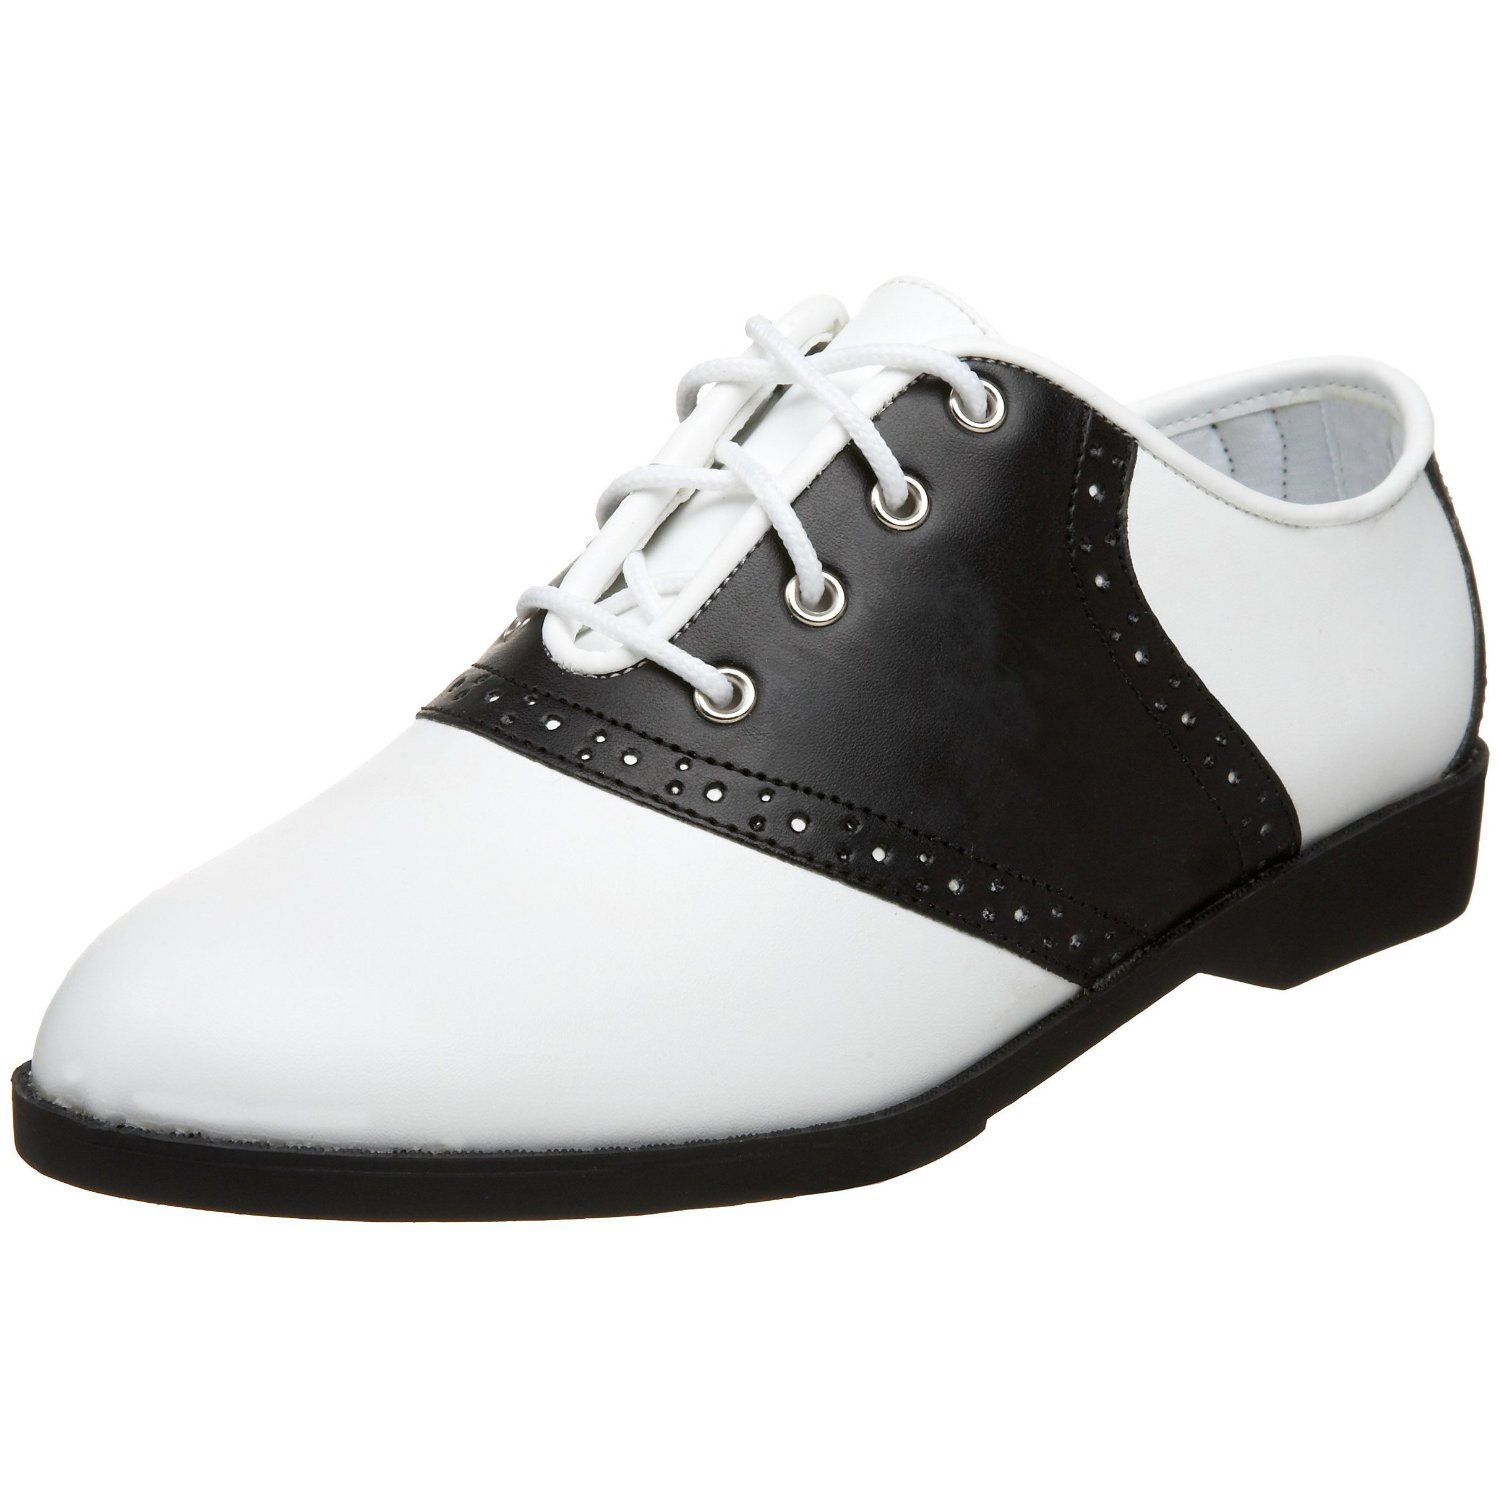 1950s Style Shoes Ladies Saddle Shoes 1950s Costume Shoes 1950s Saddle Shoes White/Black $29.88 AT vintagedancer.com